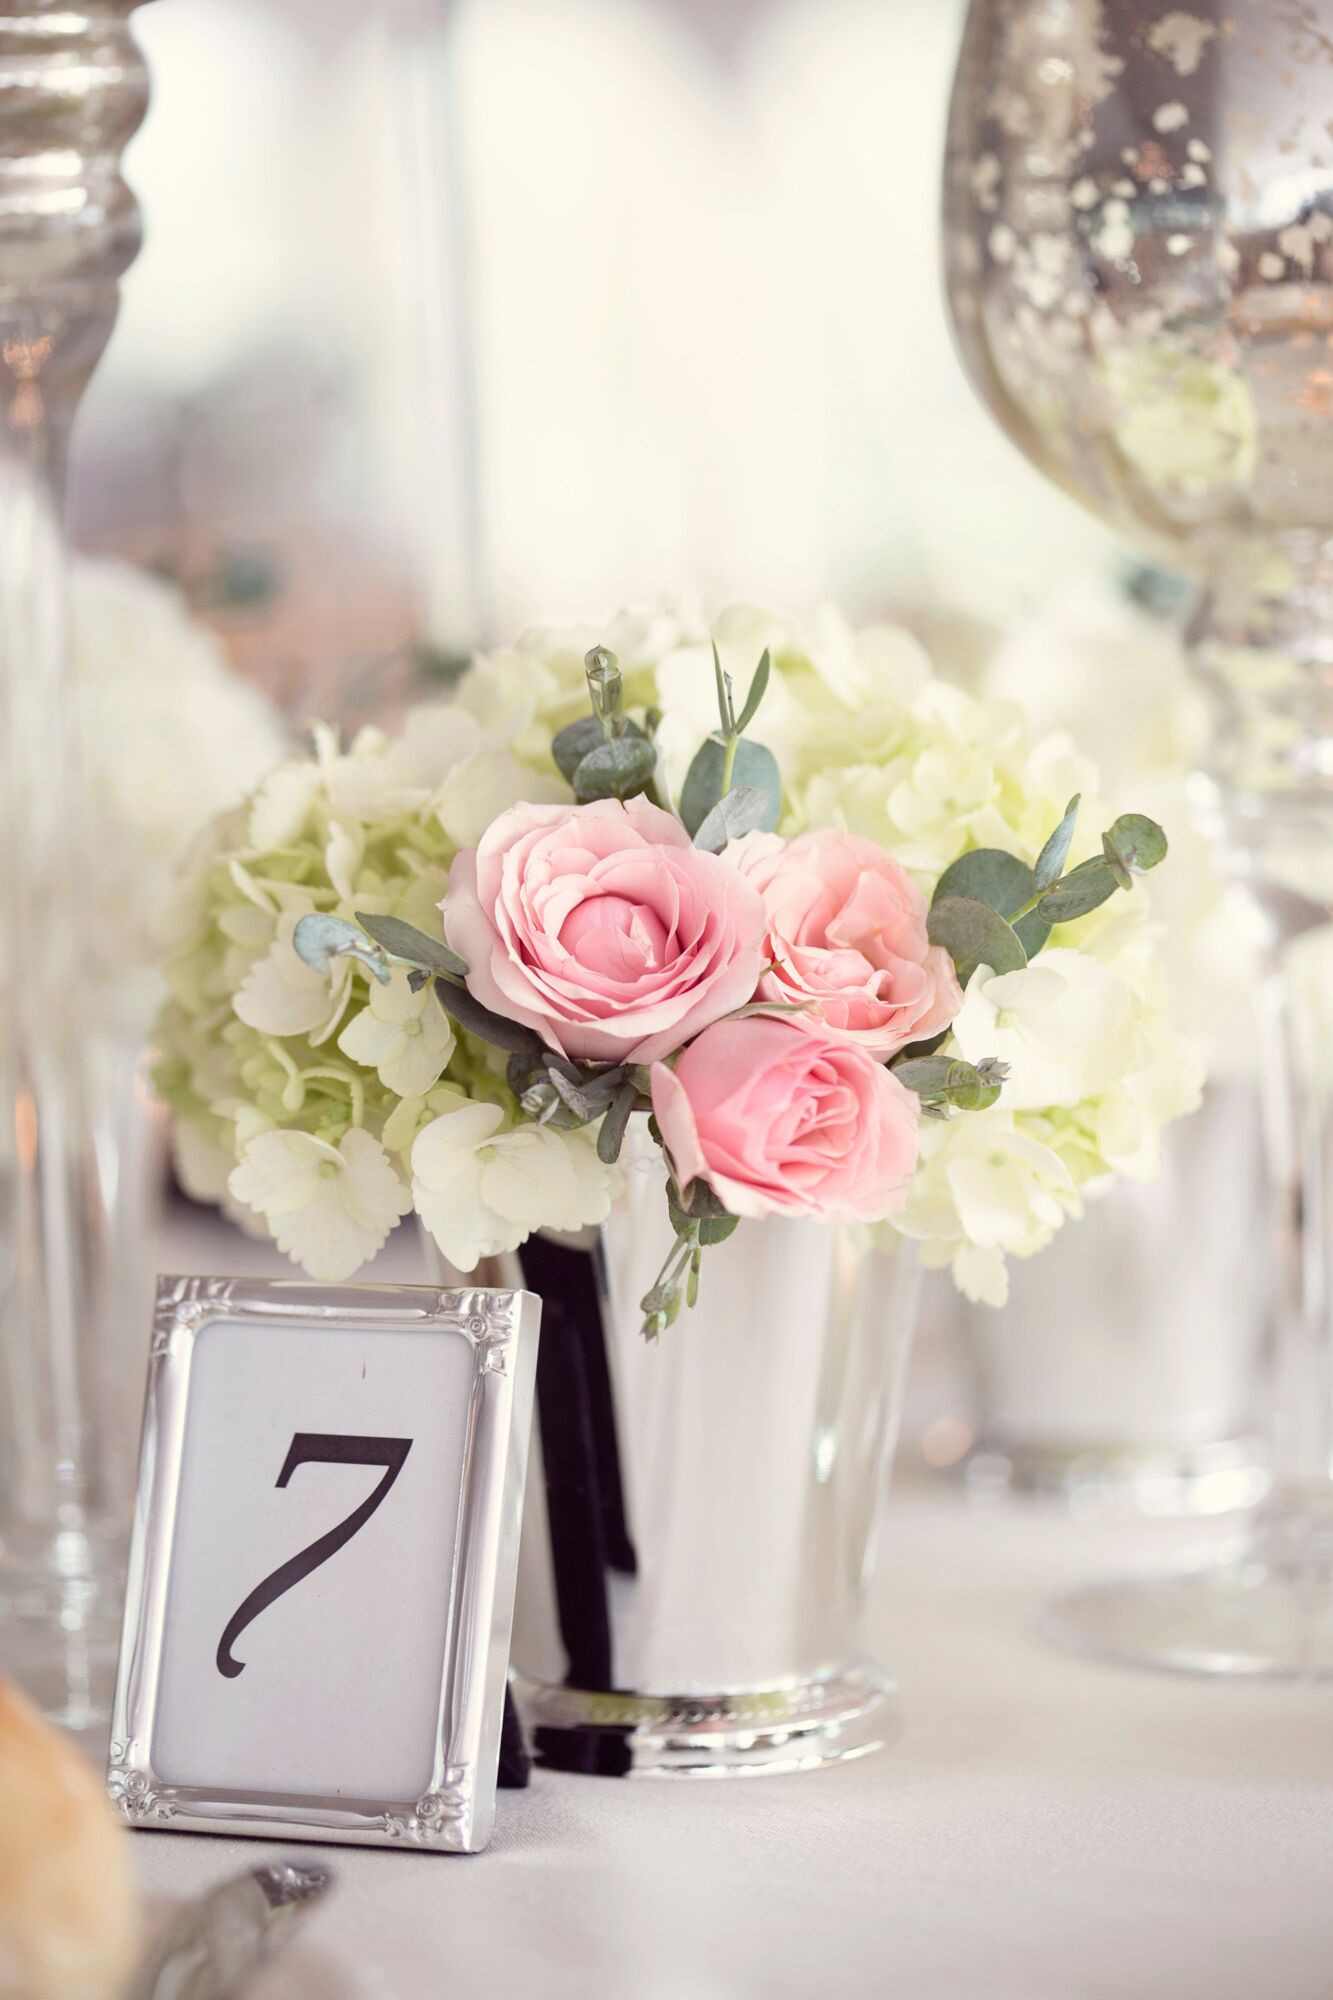 Hydrangea And Rose Centerpiece Cost : Pink rose and white hydrangea floral centerpiece